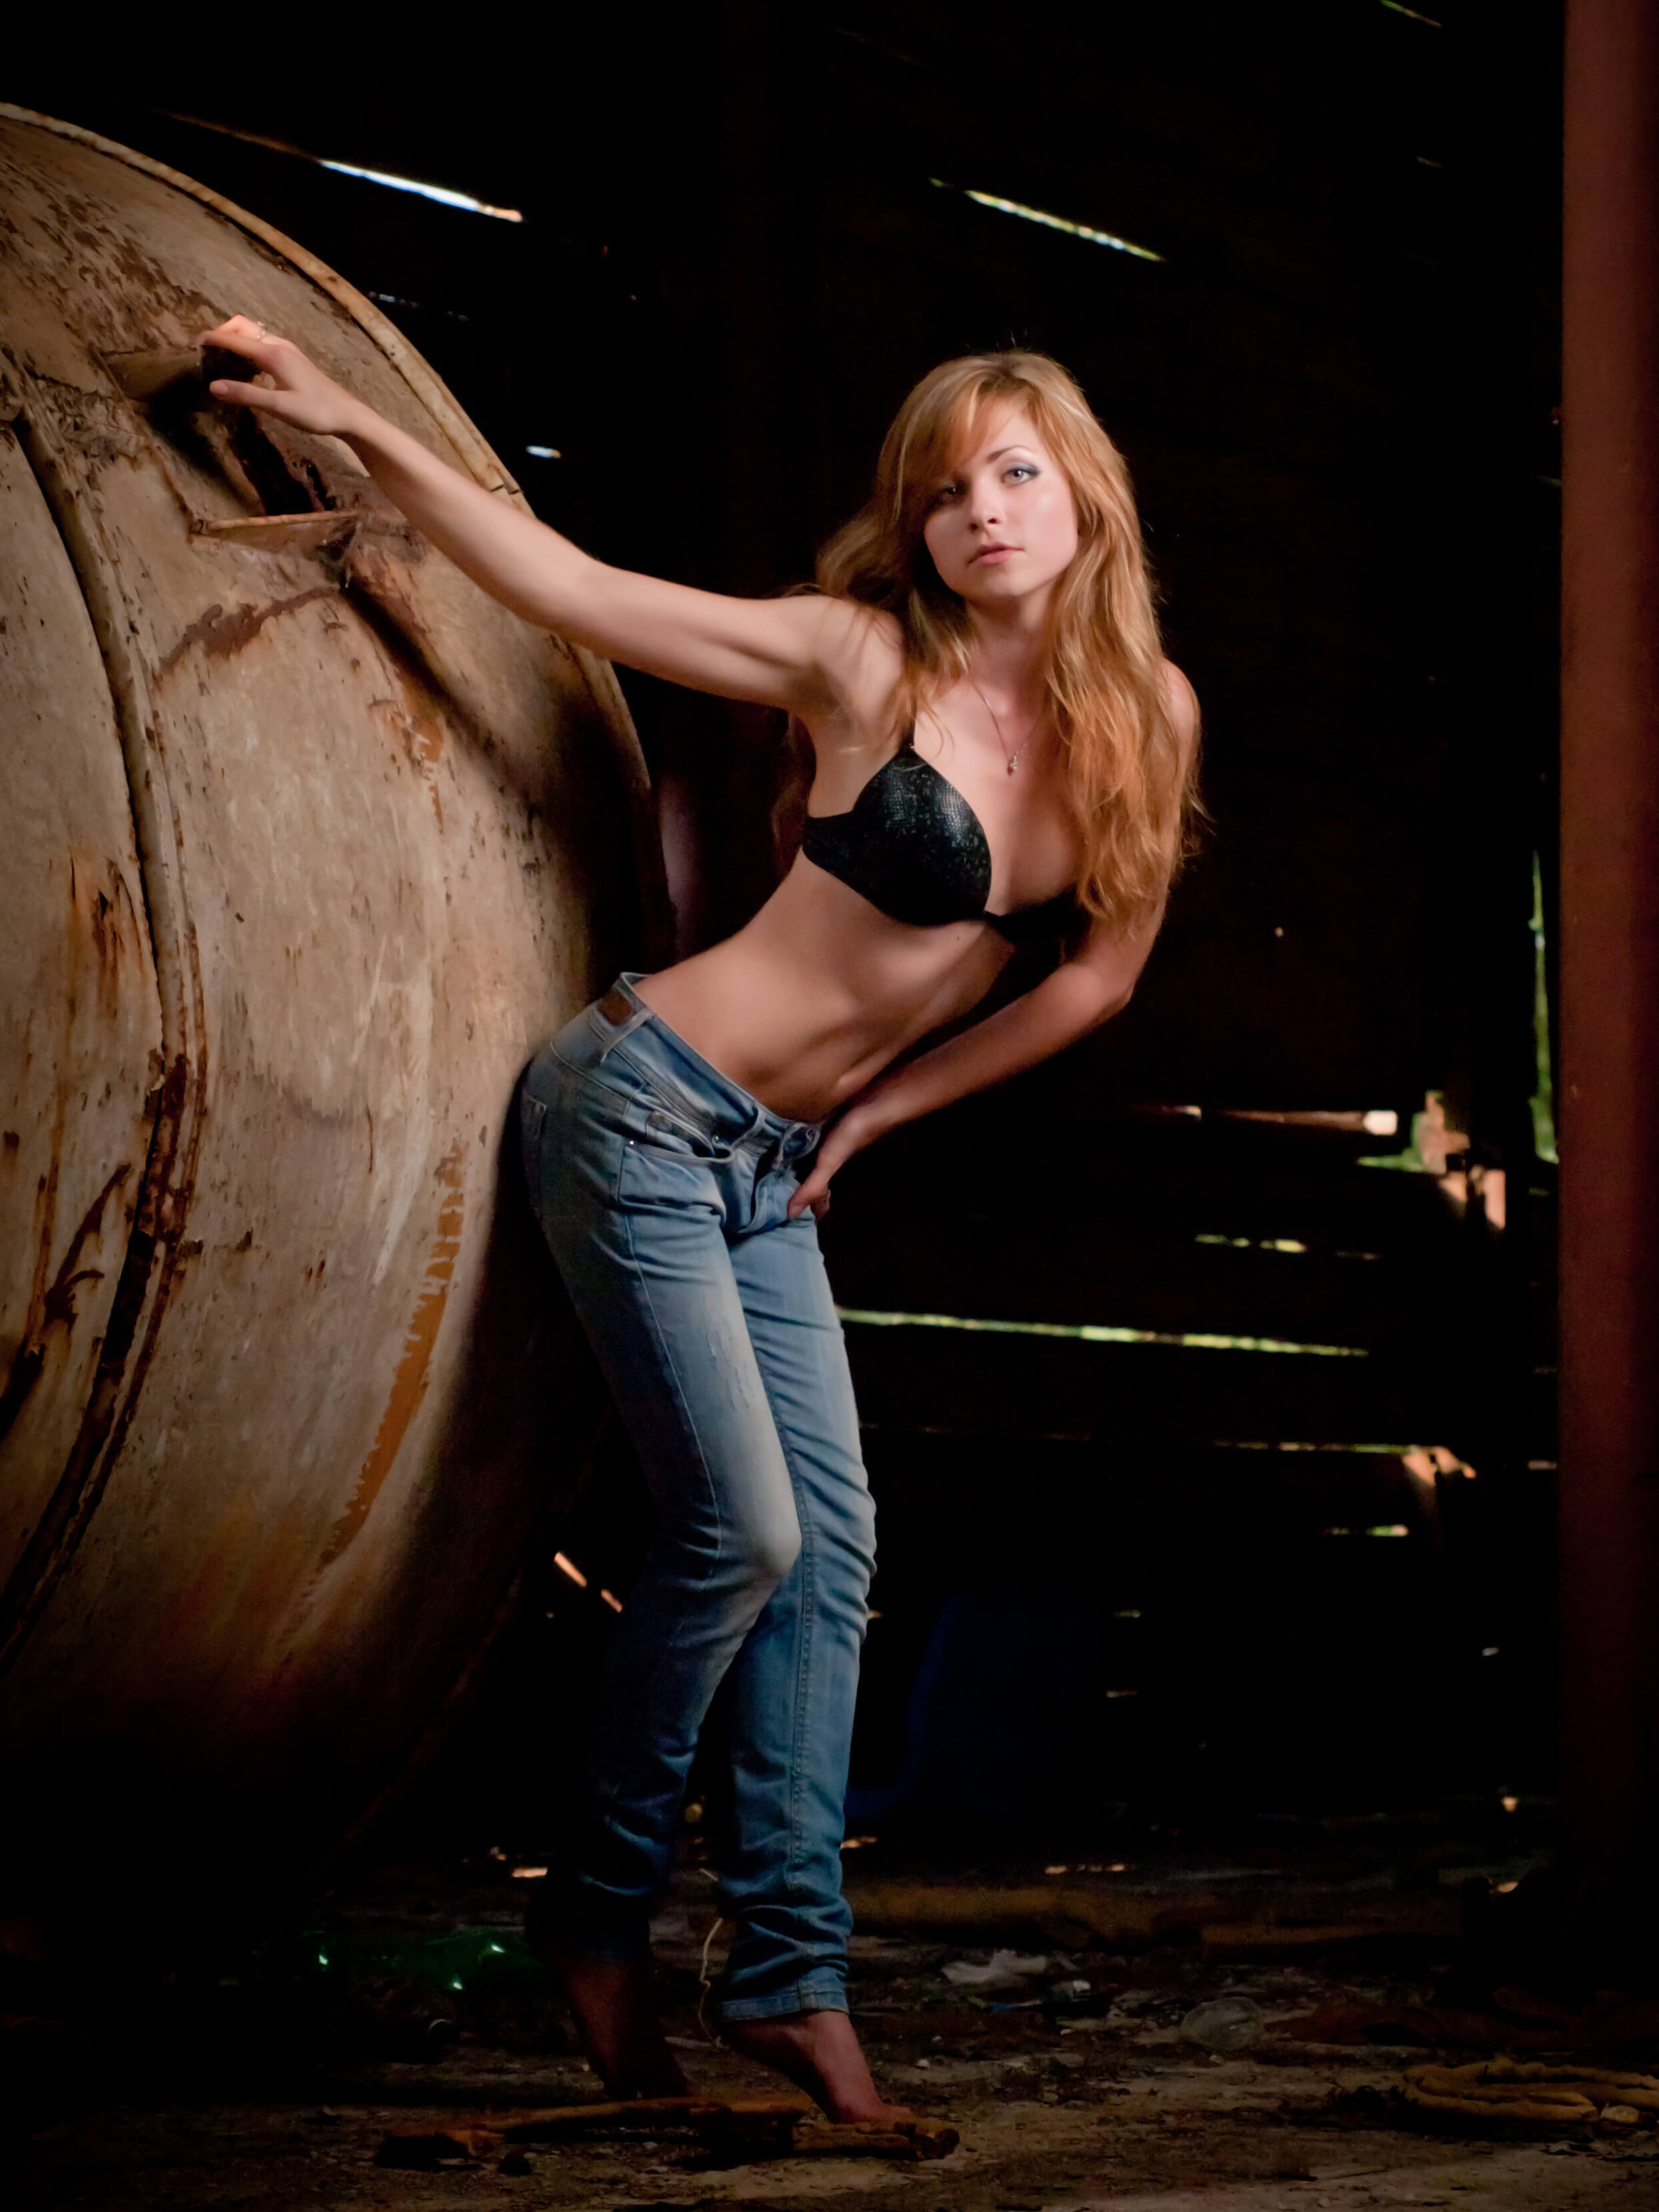 Production photography of beautiful girl model in abandoned shed near the boiler this pro photography made by Fantastic Imago Branding, Advertising and Consulting Agency